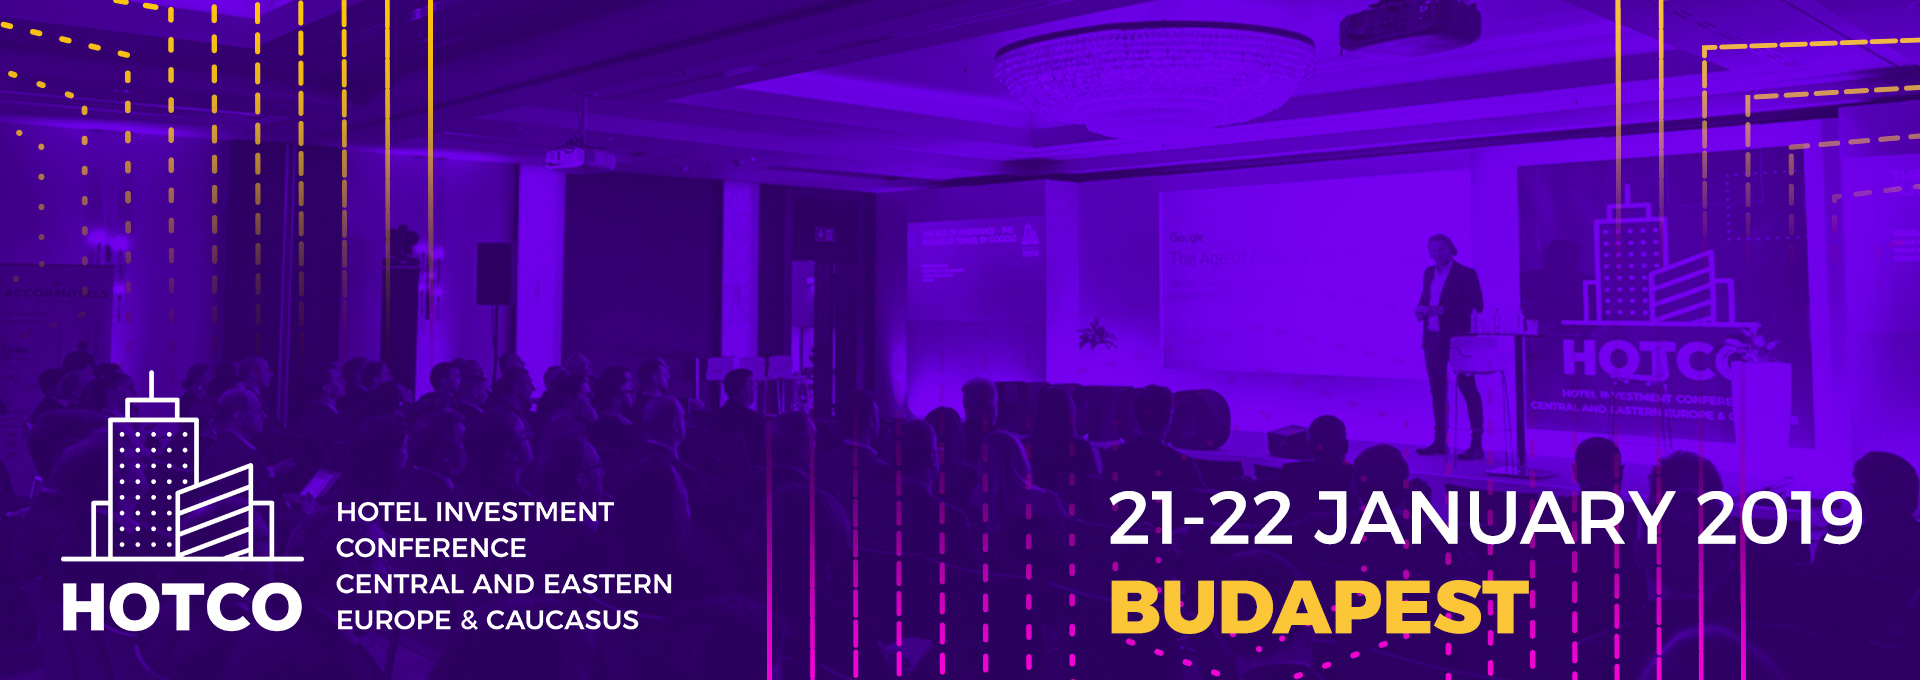 HOTCO 2019 - HOTEL INVESTMENT CONFERENCE CEE & CAUCASUS